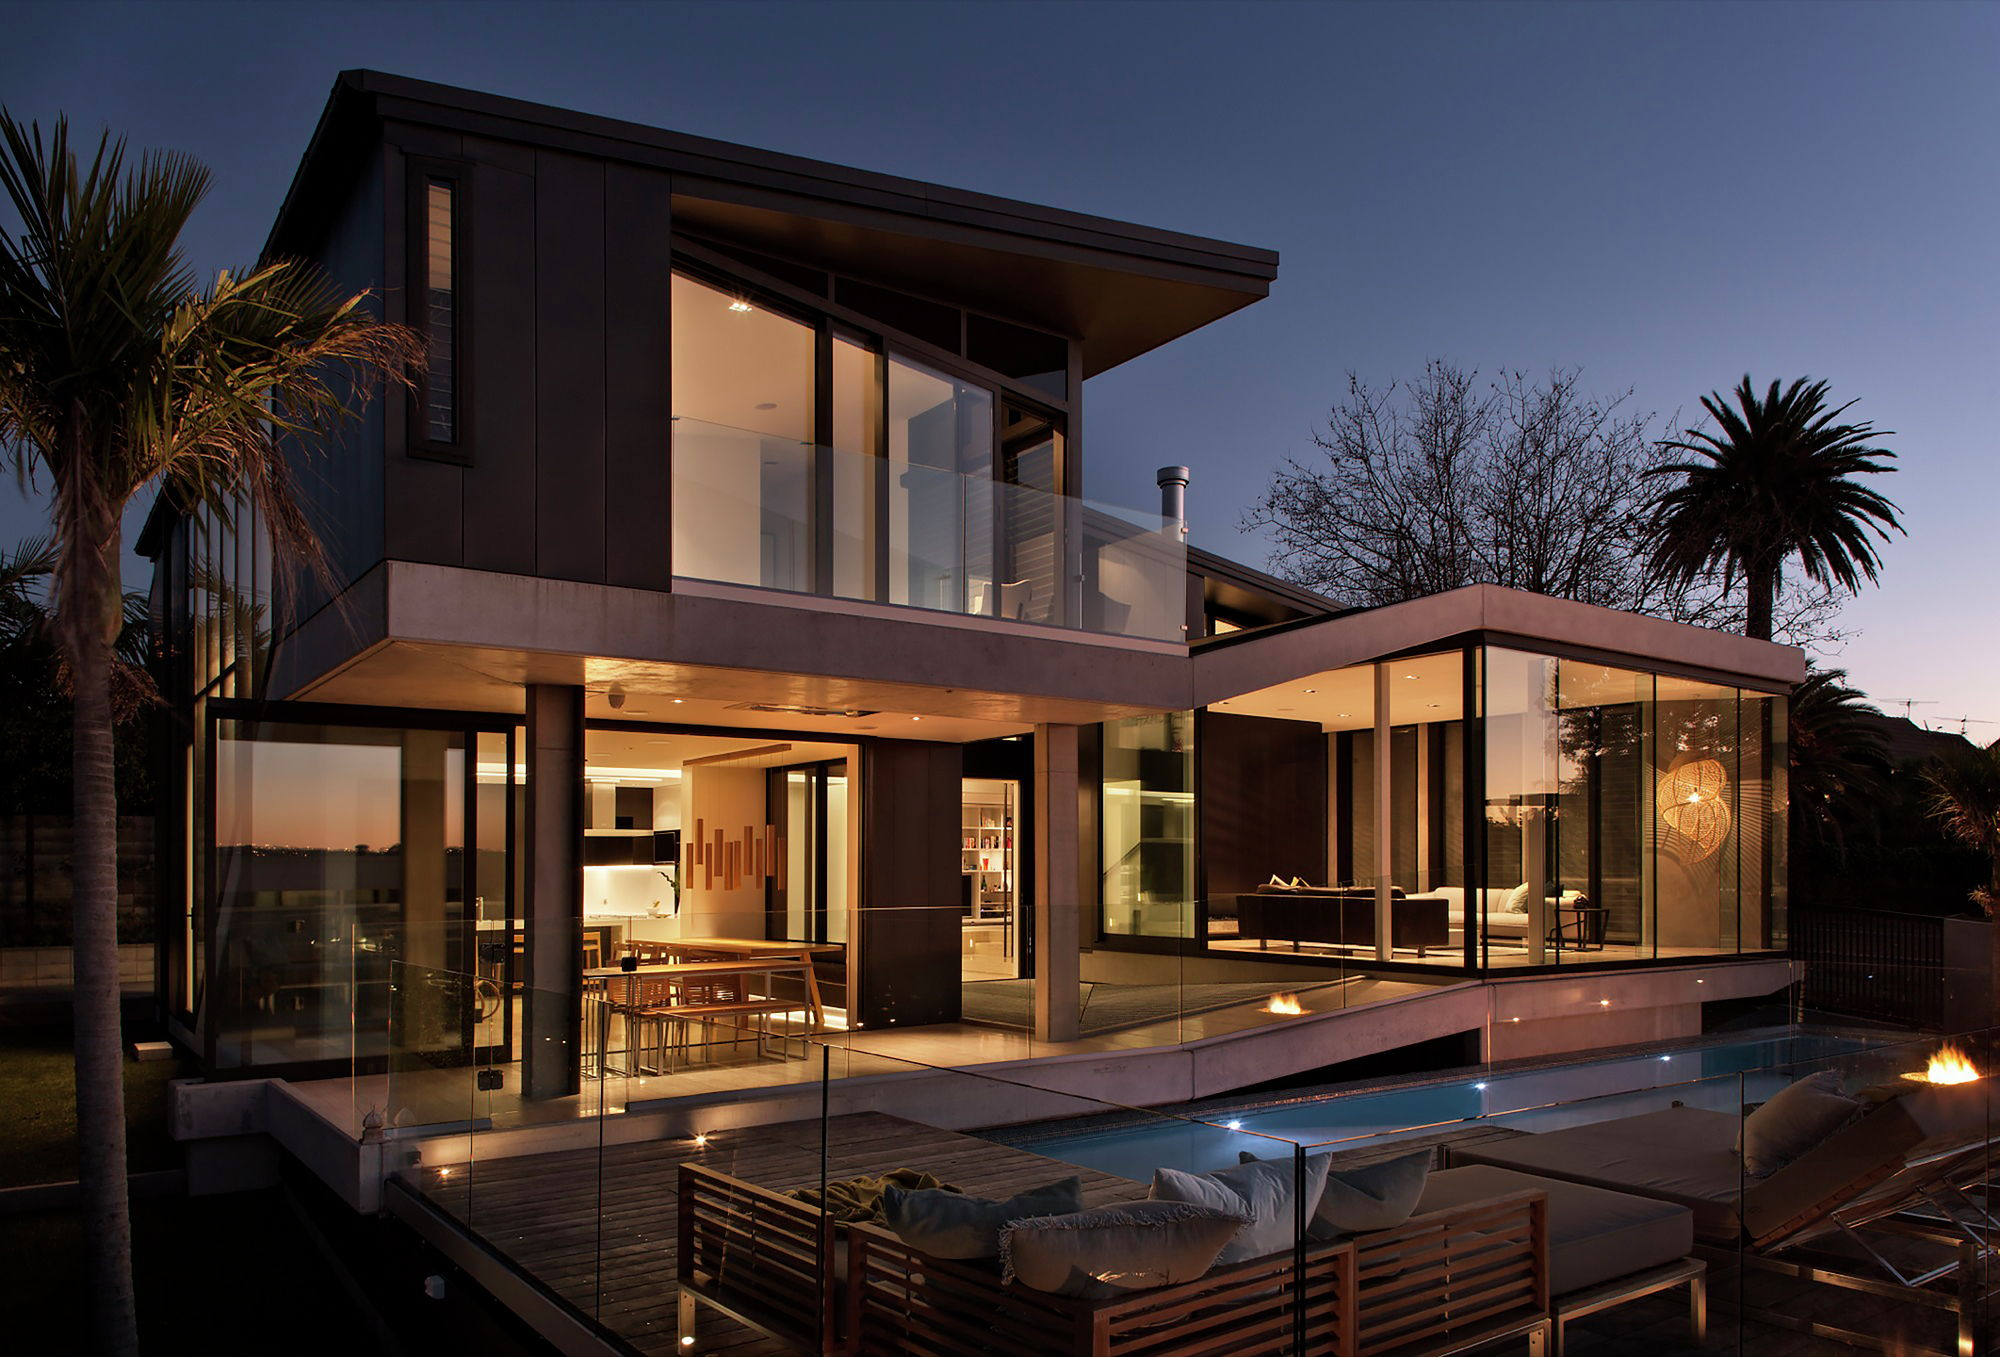 Out of town villa in new zealand upon the project of for Modern new zealand homes